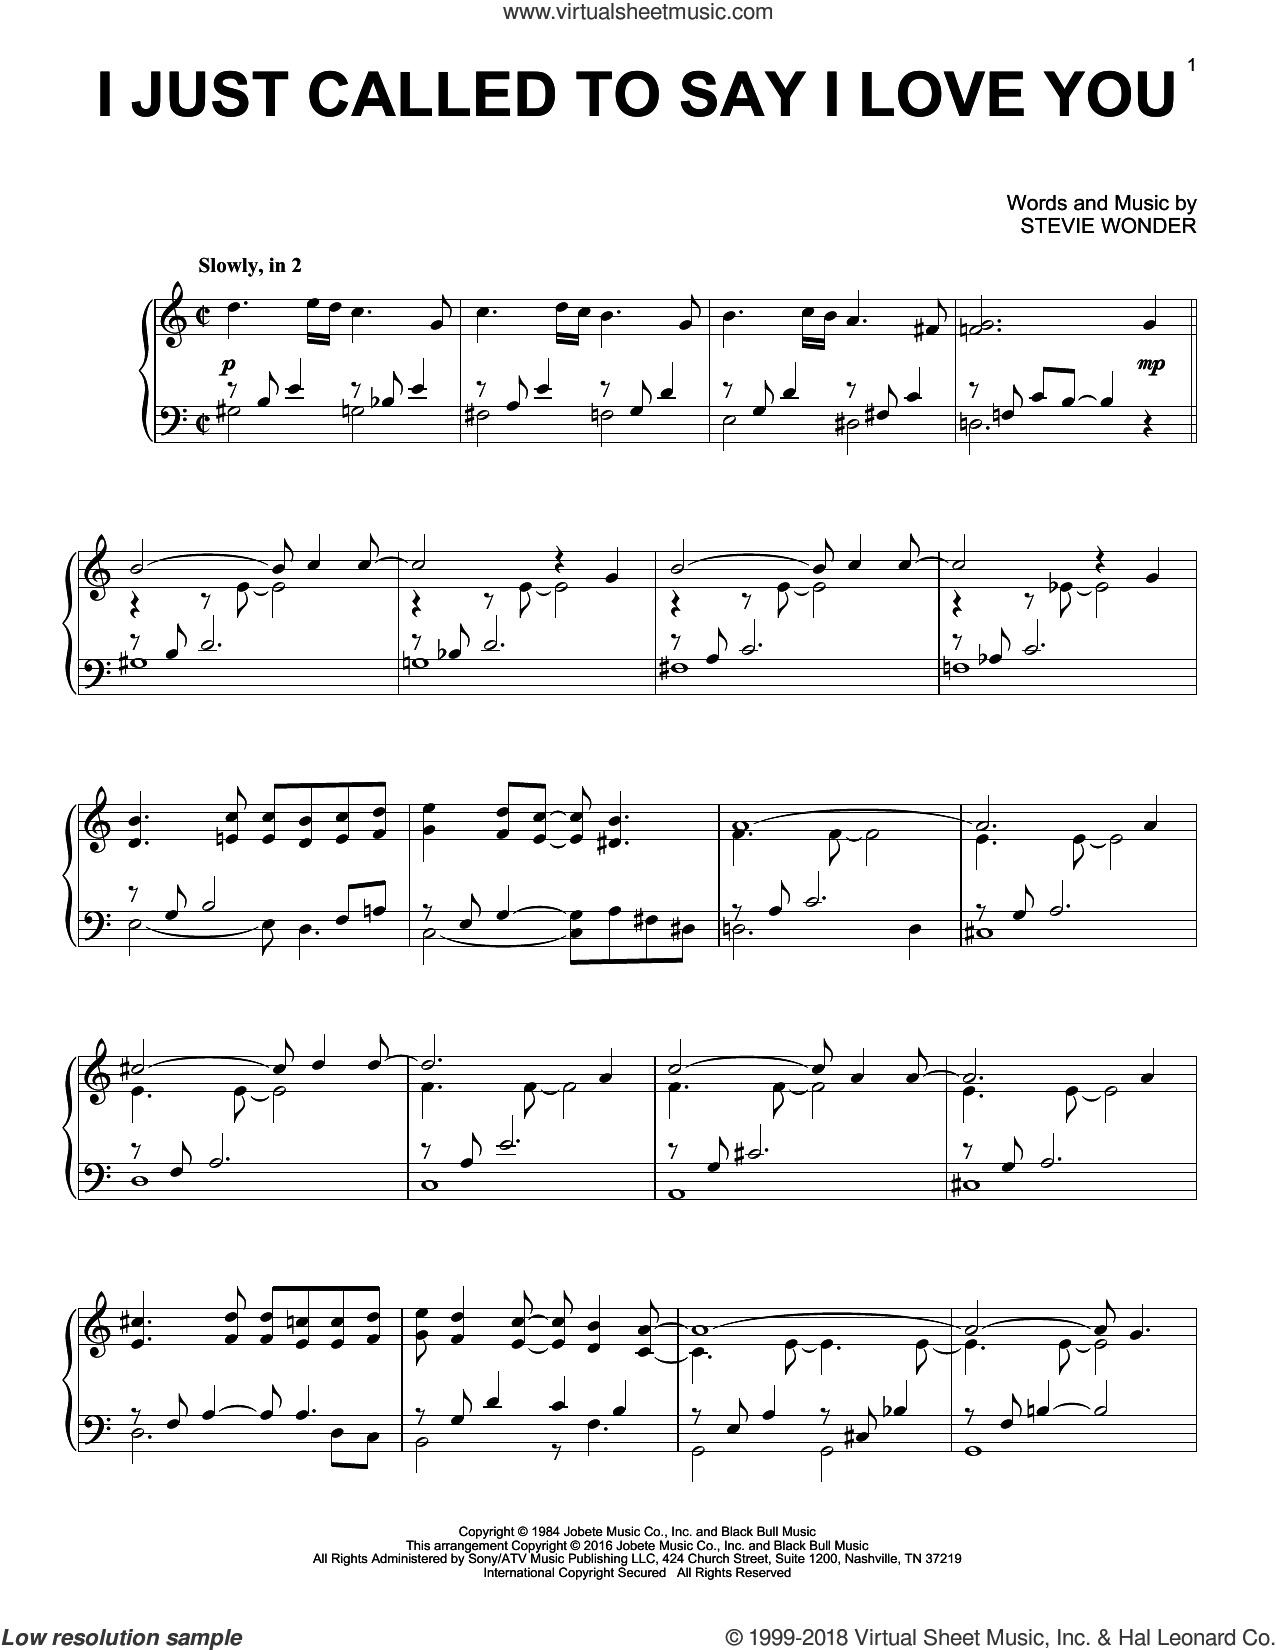 I Just Called To Say I Love You, (intermediate) sheet music for piano solo by Stevie Wonder, intermediate skill level